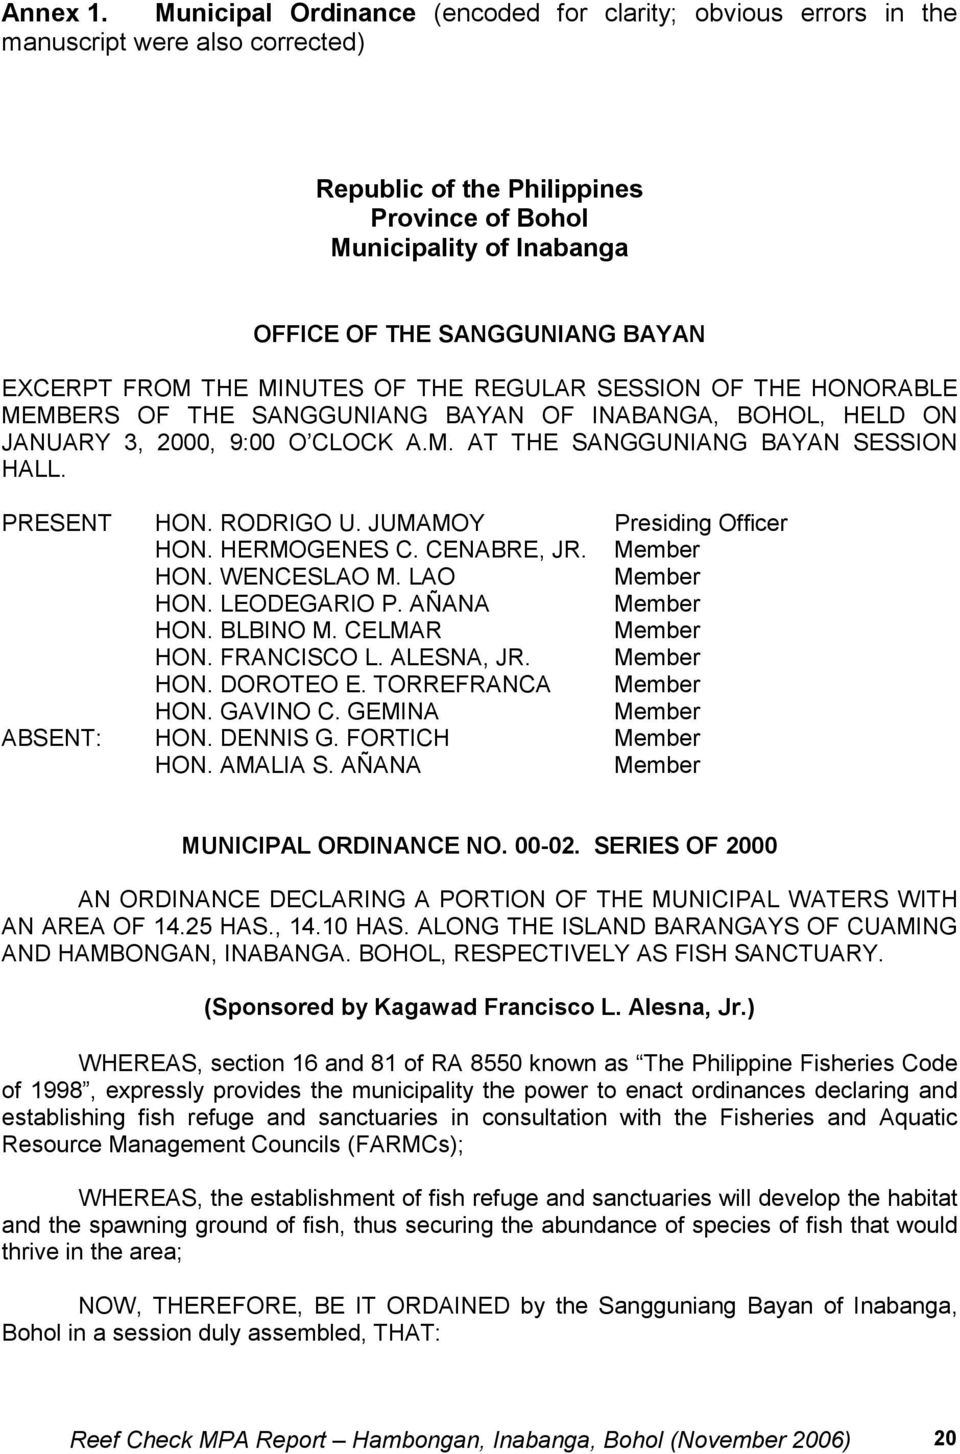 EXCERPT FROM THE MINUTES OF THE REGULAR SESSION OF THE HONORABLE MEMBERS OF THE SANGGUNIANG BAYAN OF INABANGA, BOHOL, HELD ON JANUARY 3, 2000, 9:00 O CLOCK A.M. AT THE SANGGUNIANG BAYAN SESSION HALL.